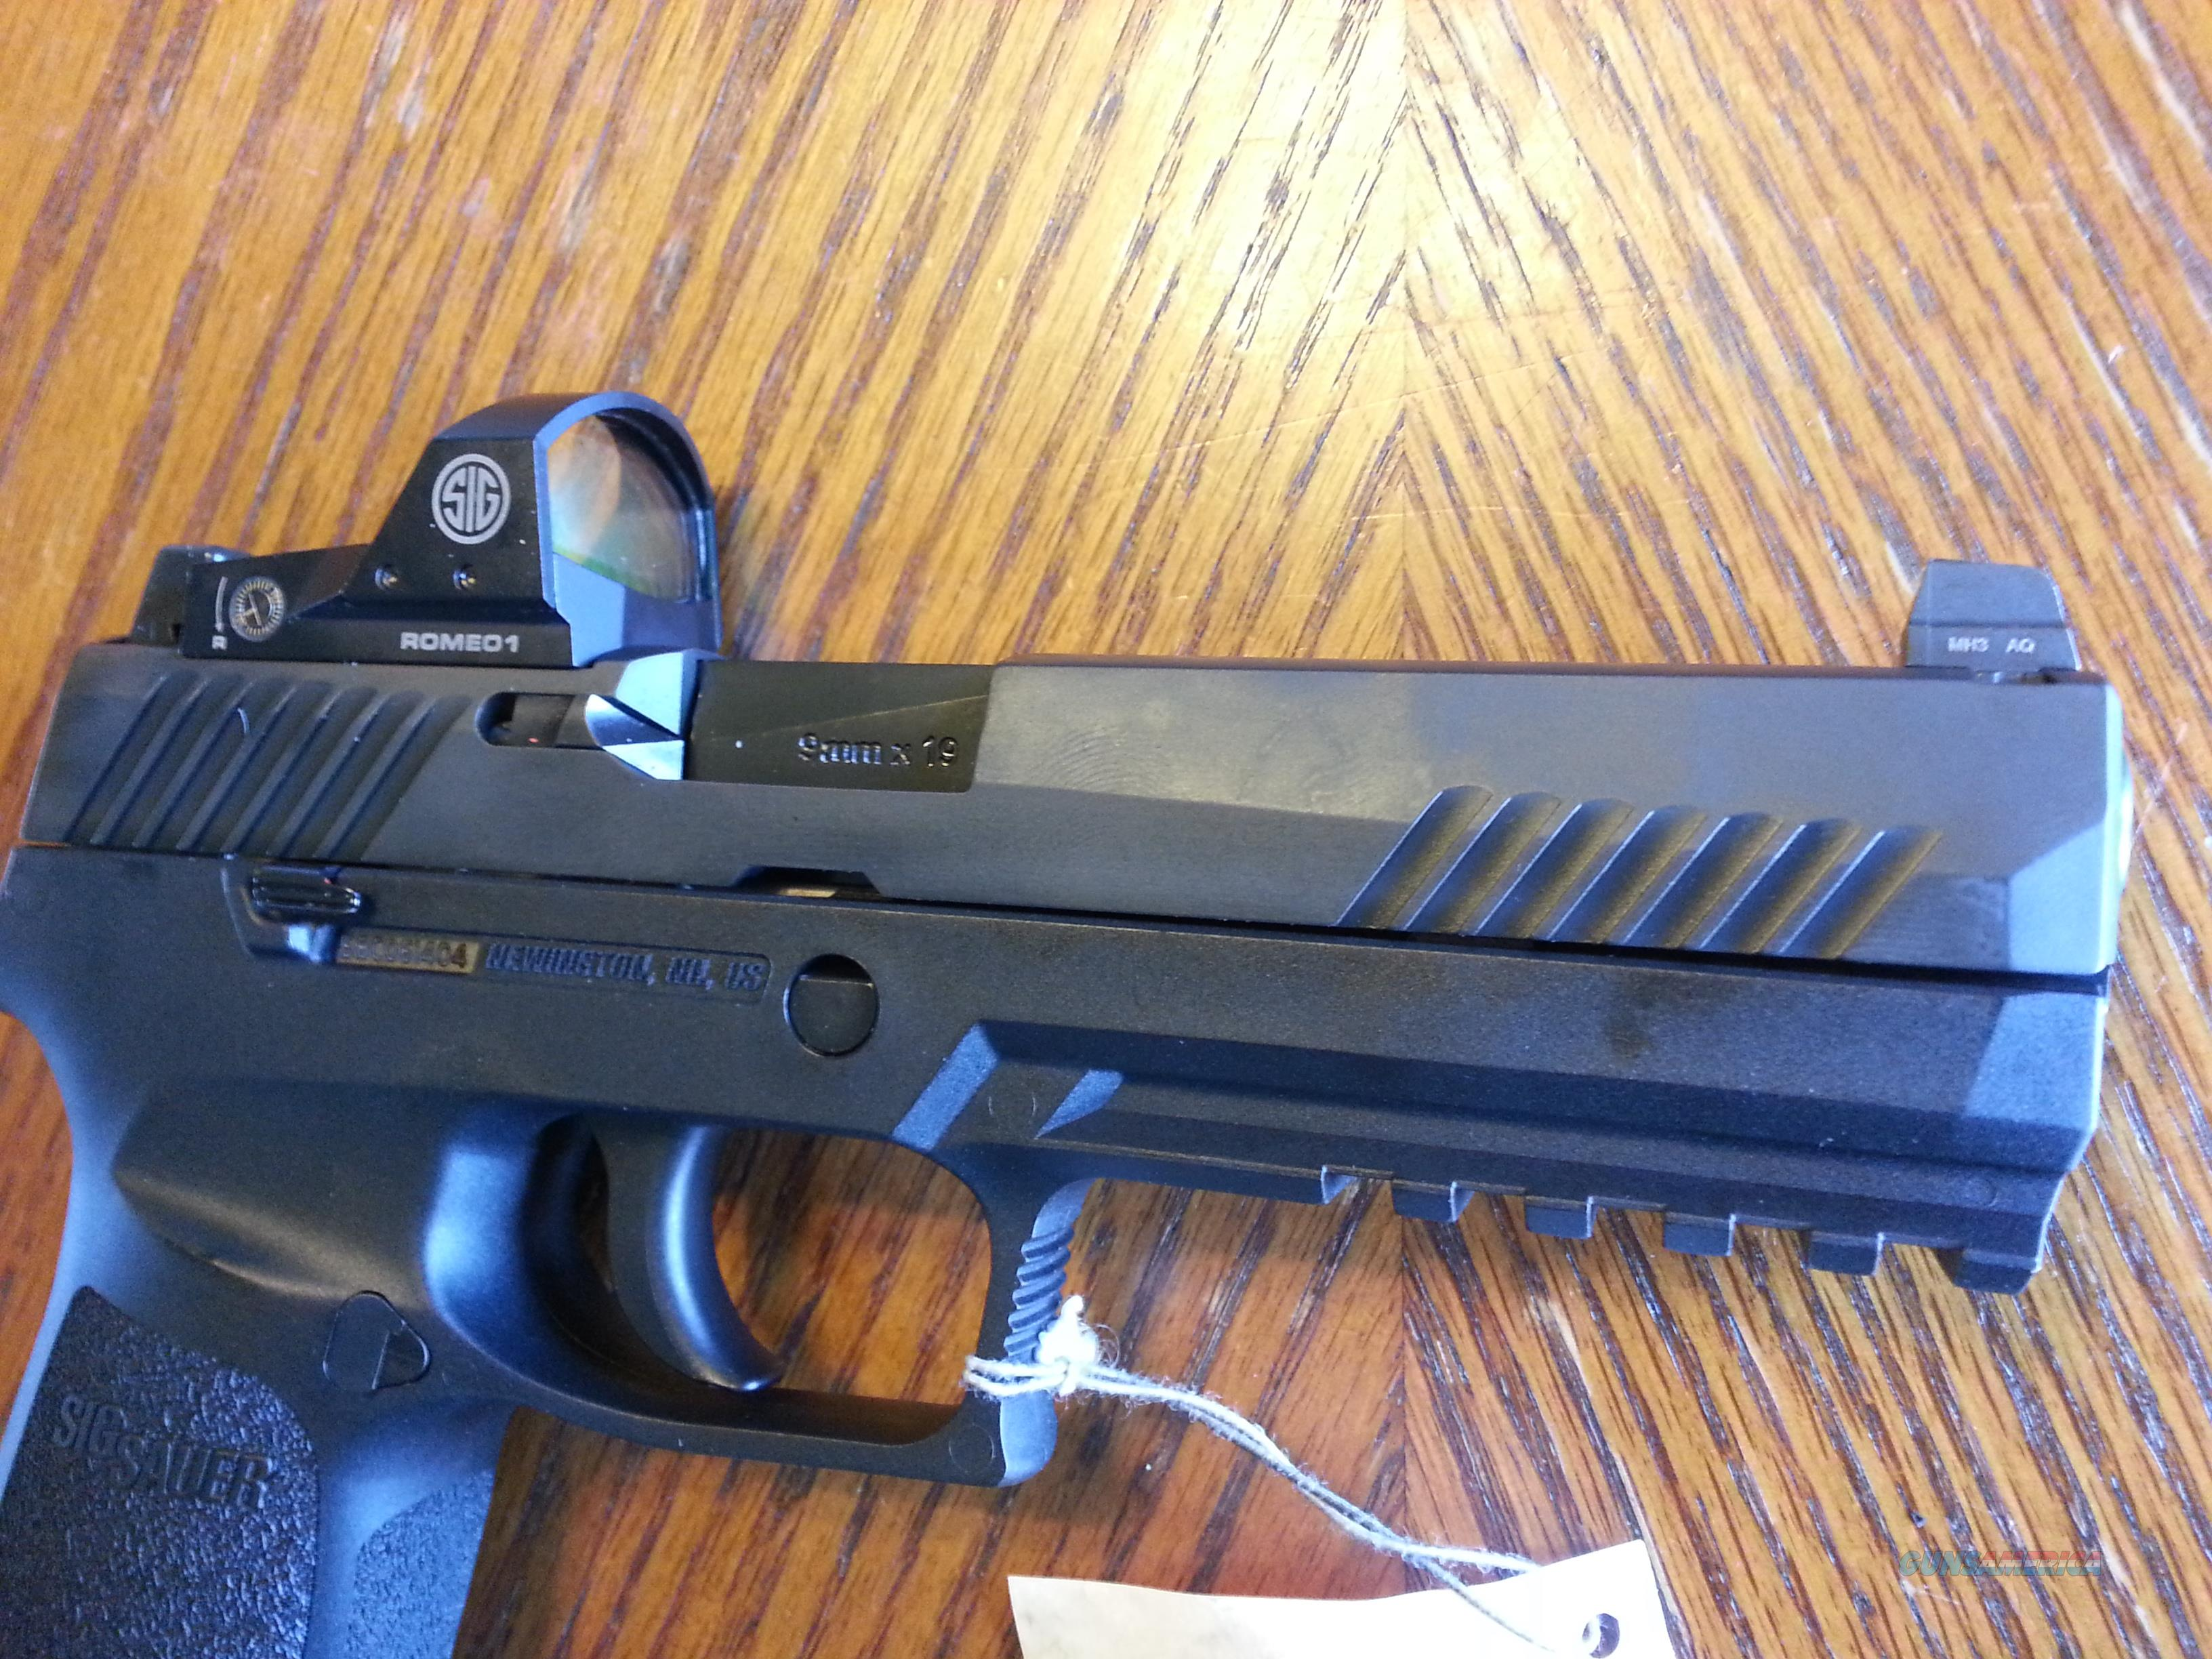 "Sig Sauer P320 4.7"" 9mm +Sig Romeo 1 Red Dot + High Co-Witness Night Sights NIB FREE LAYAWAY  Guns > Pistols > Sig - Sauer/Sigarms Pistols > P320"